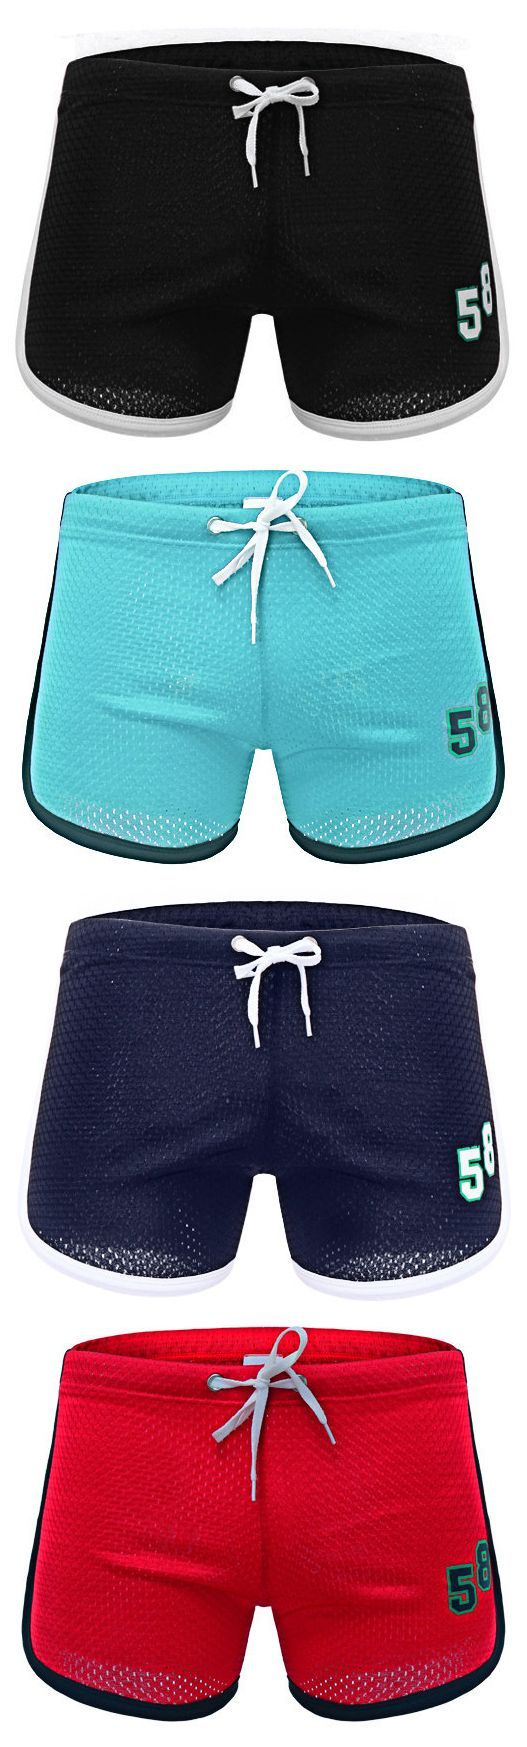 Mesh Breathable Boxer Home Shorts Double Layer Quick Qry Sport Jogging Shorts for Men